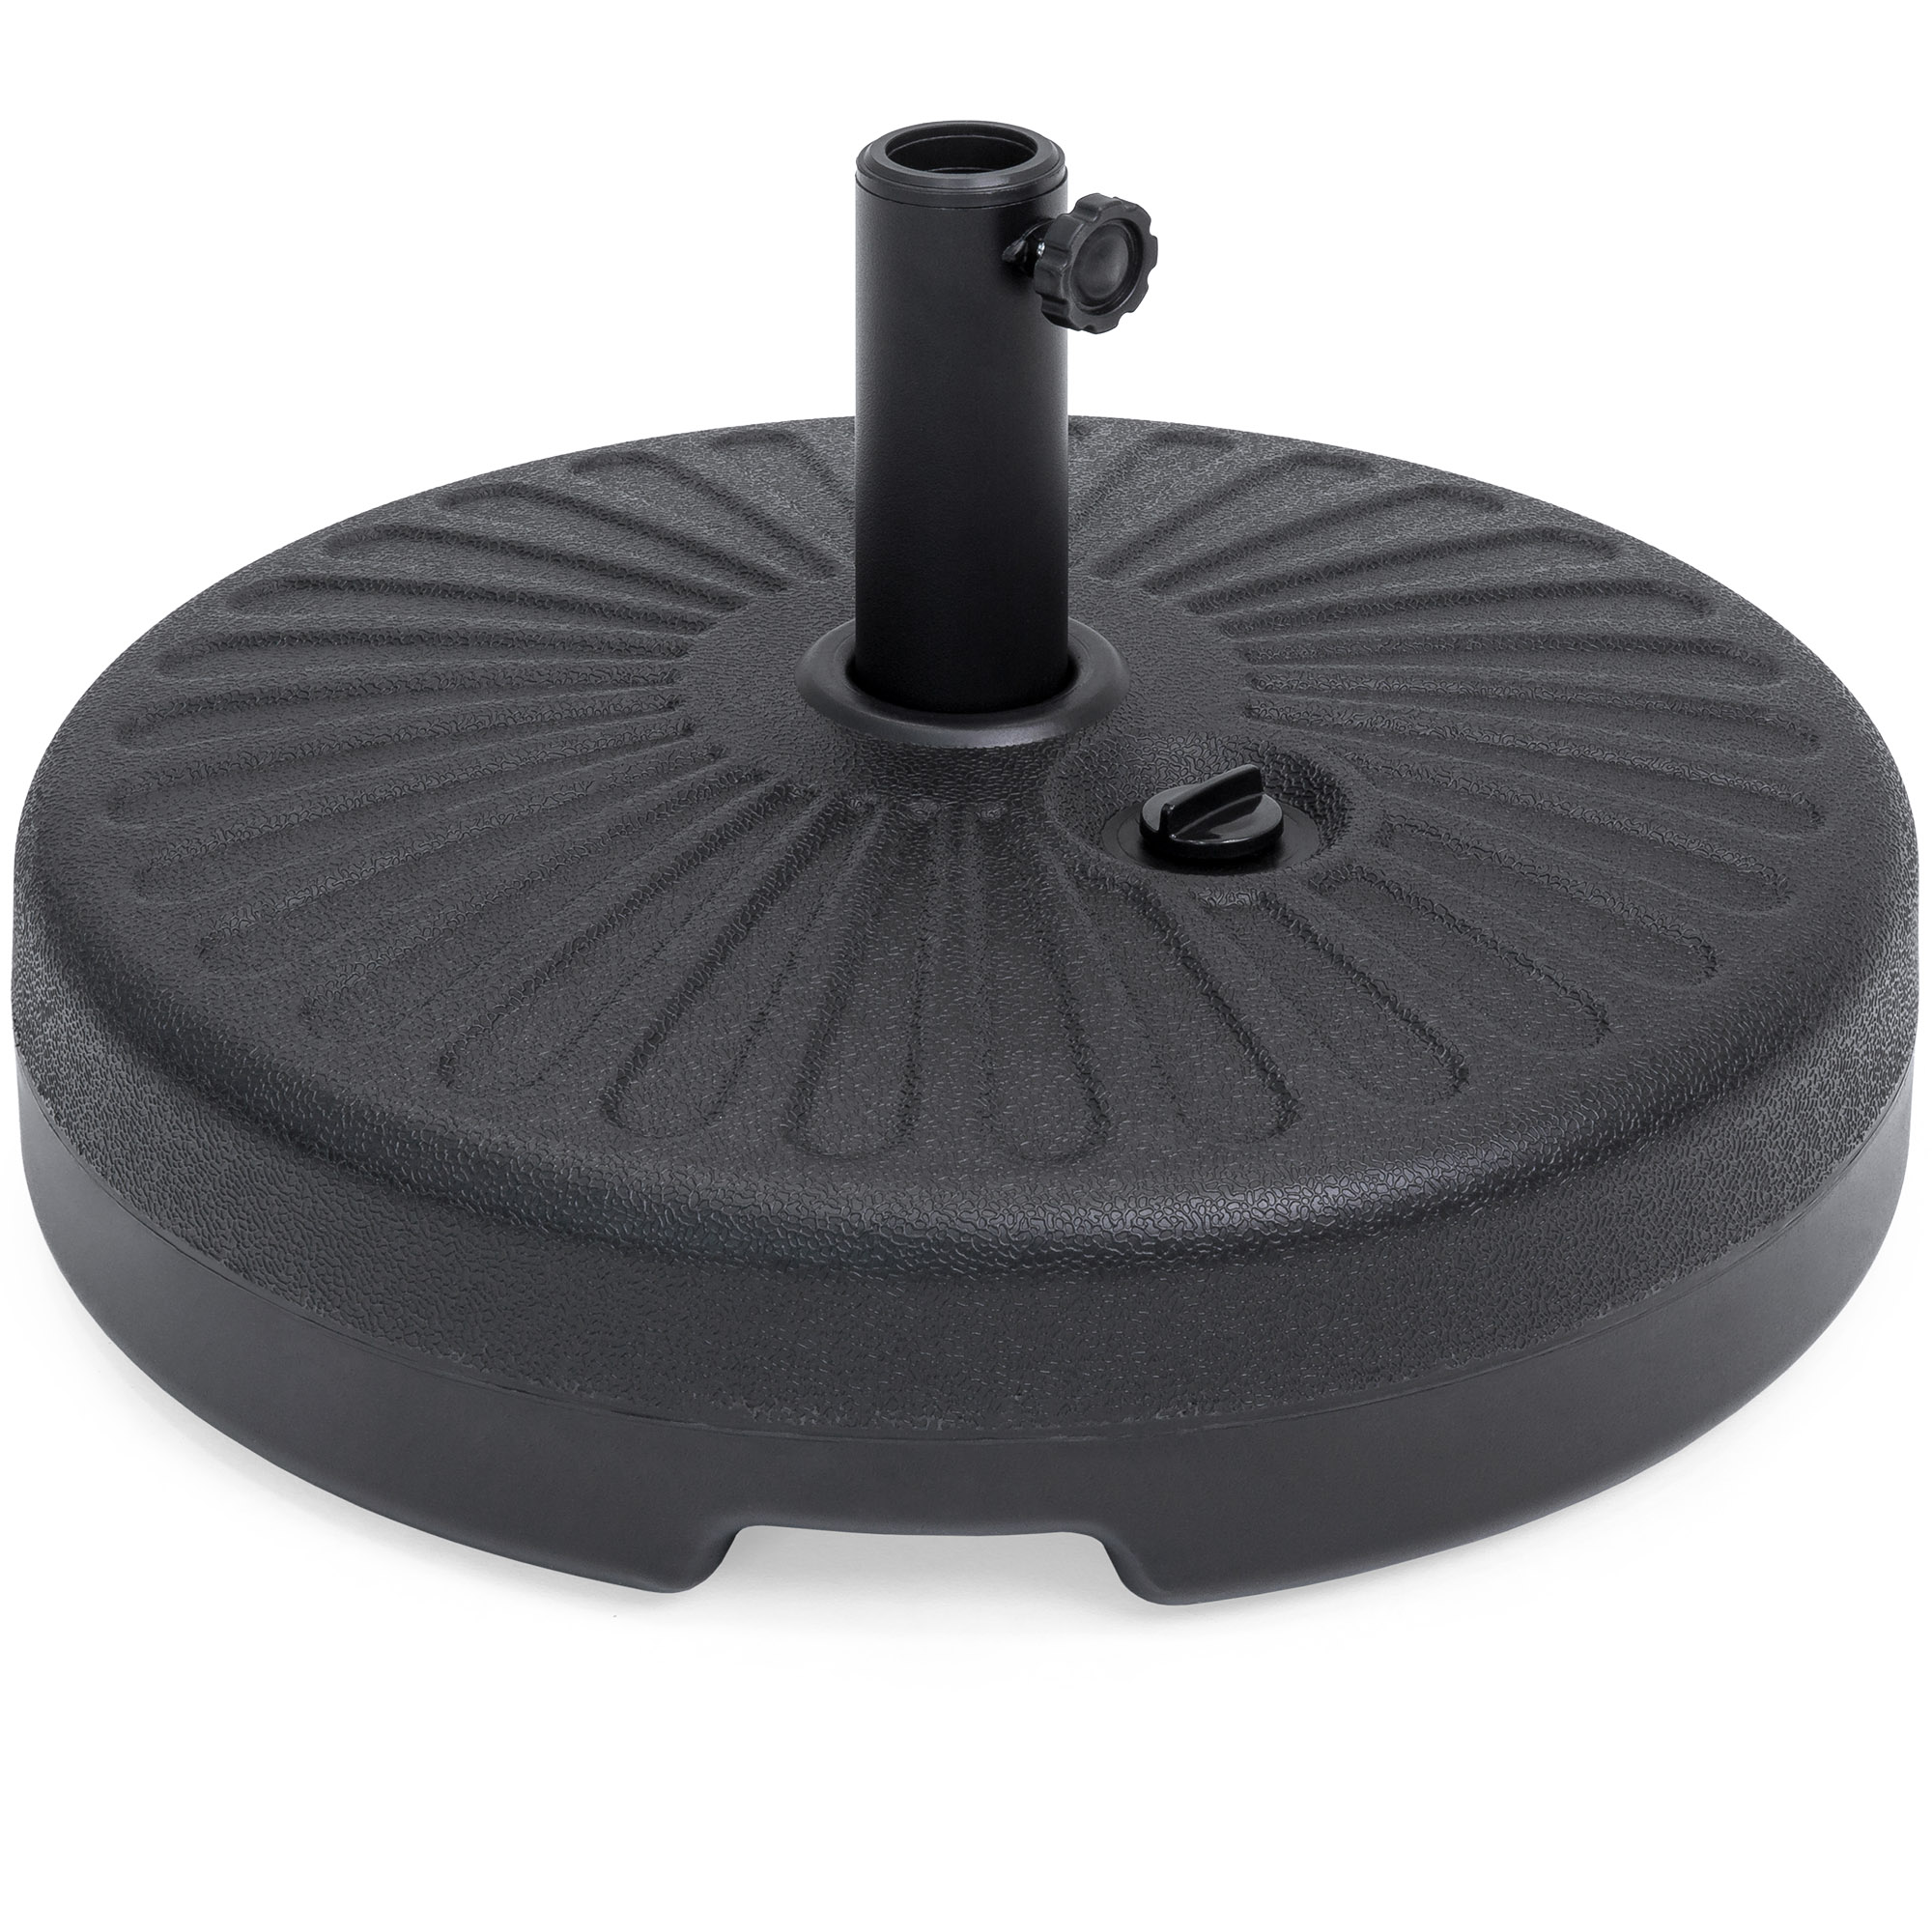 Best Choice Products Plastic Fillable Patio Umbrella Base Stand Pole Holder for Outdoor, Lawn, Garden - Black